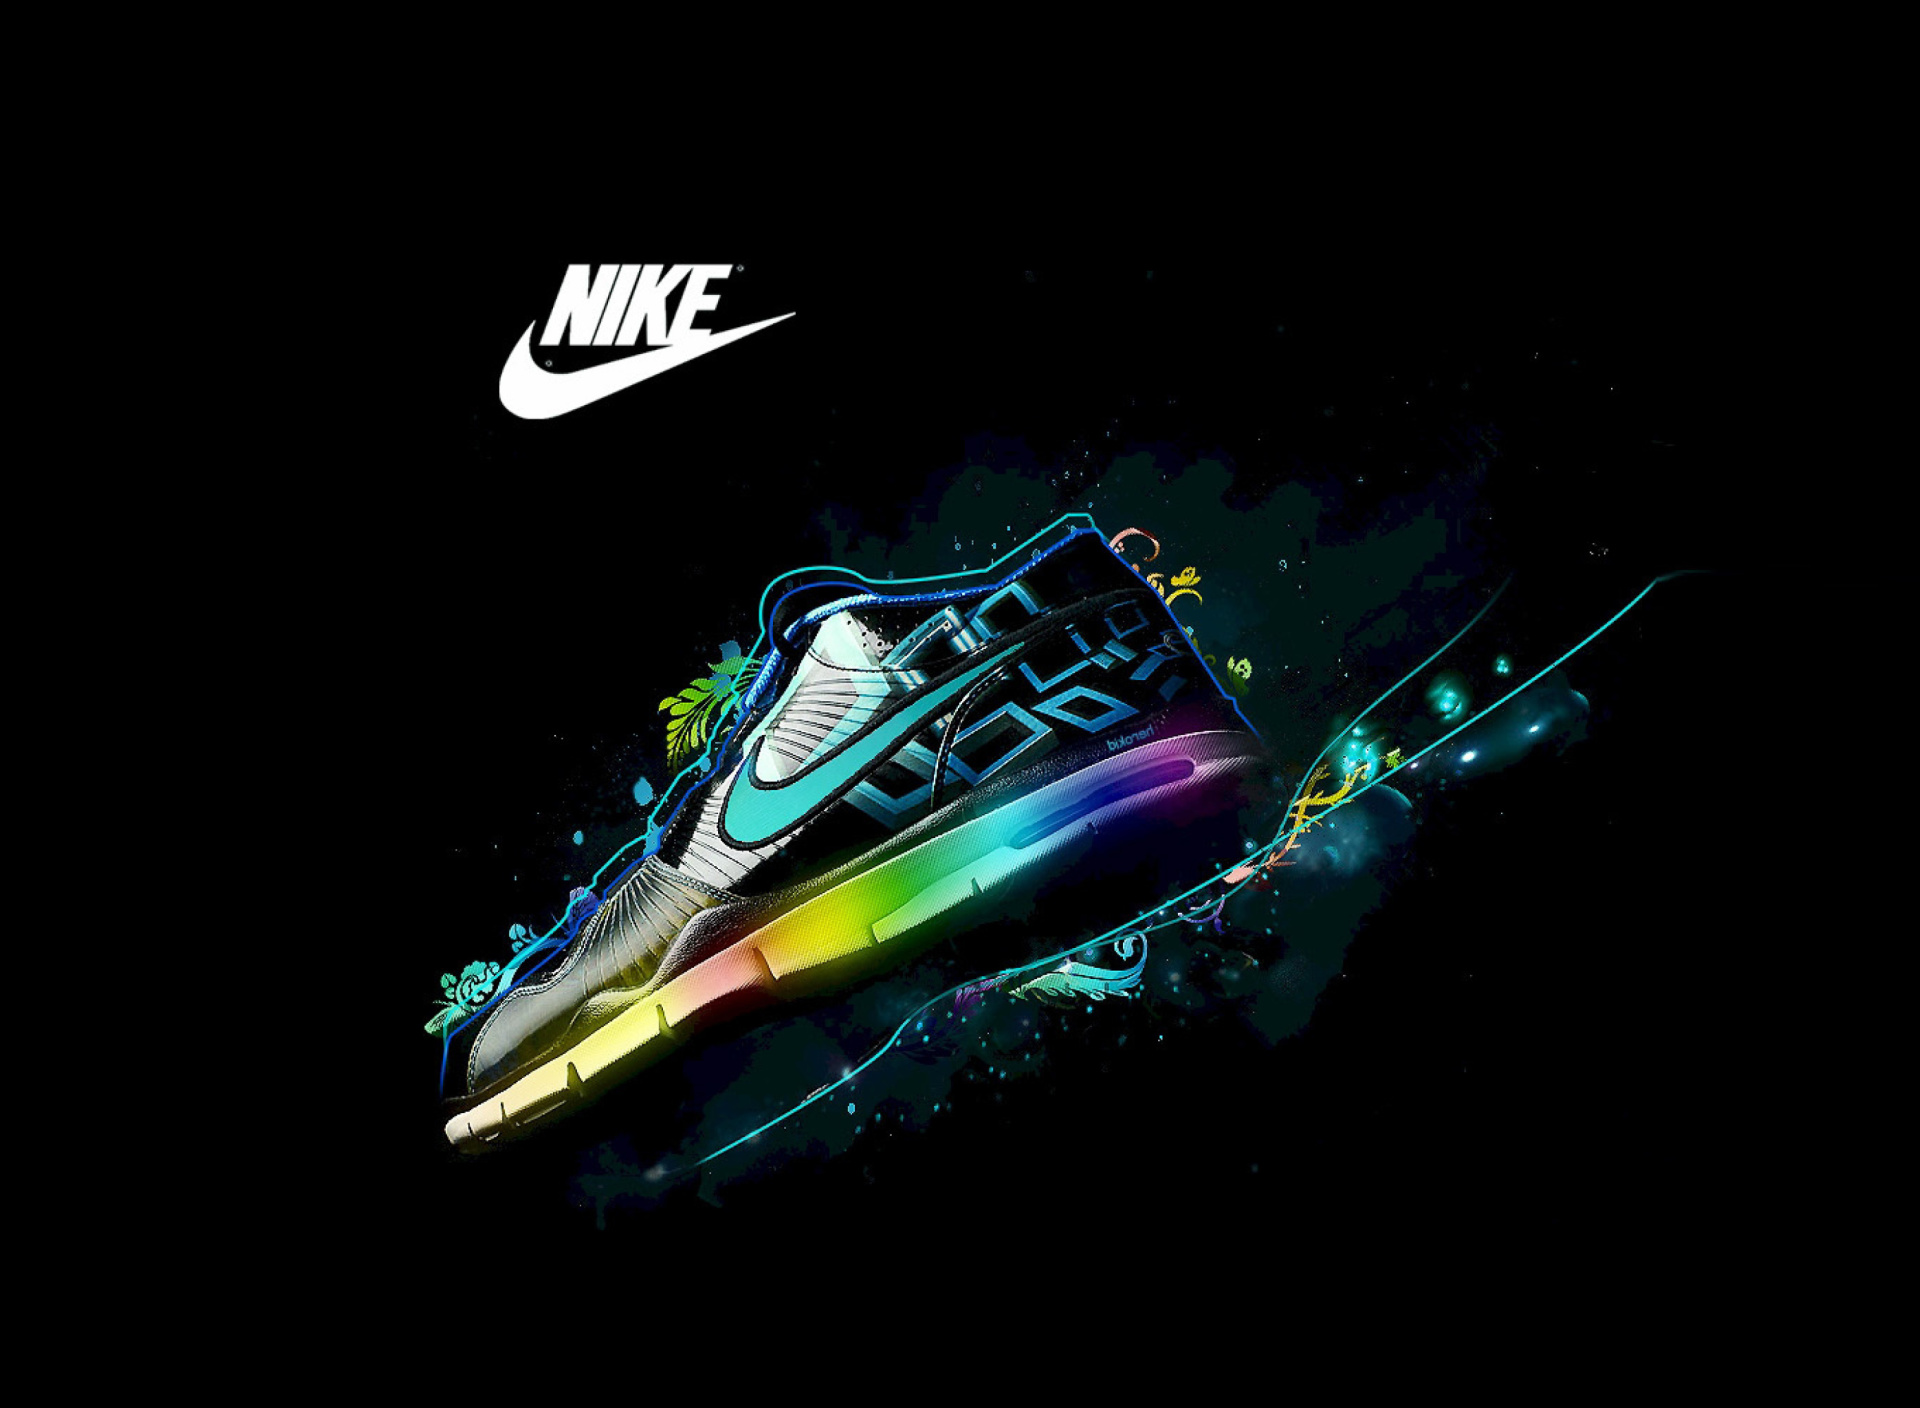 Download Nike Galaxy Wallpaper Gallery 1920x1408